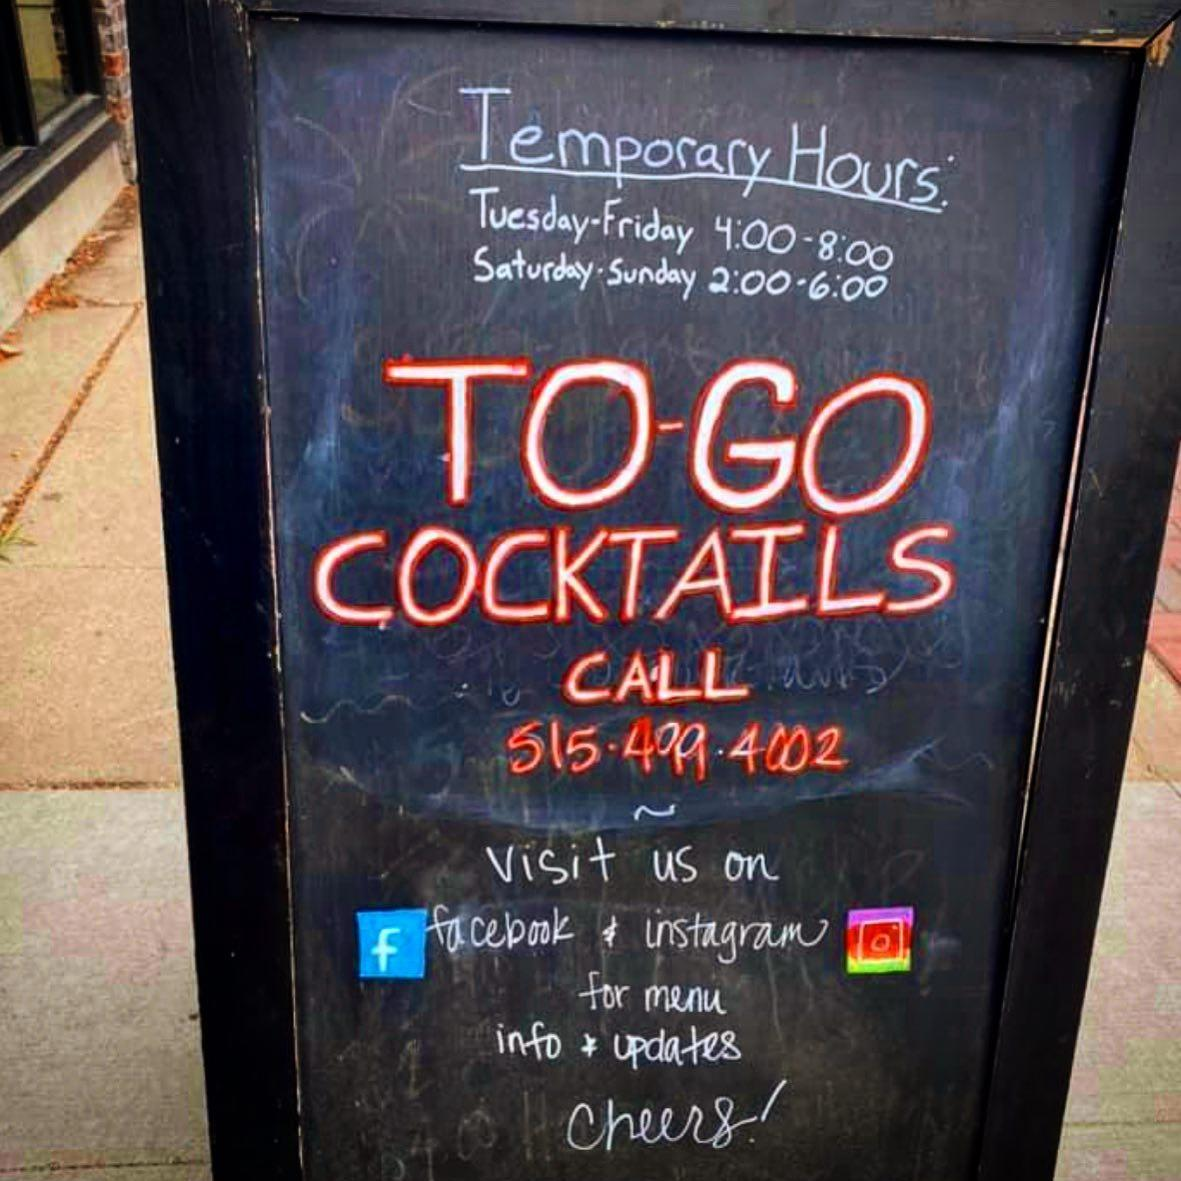 To-Go Cocktails